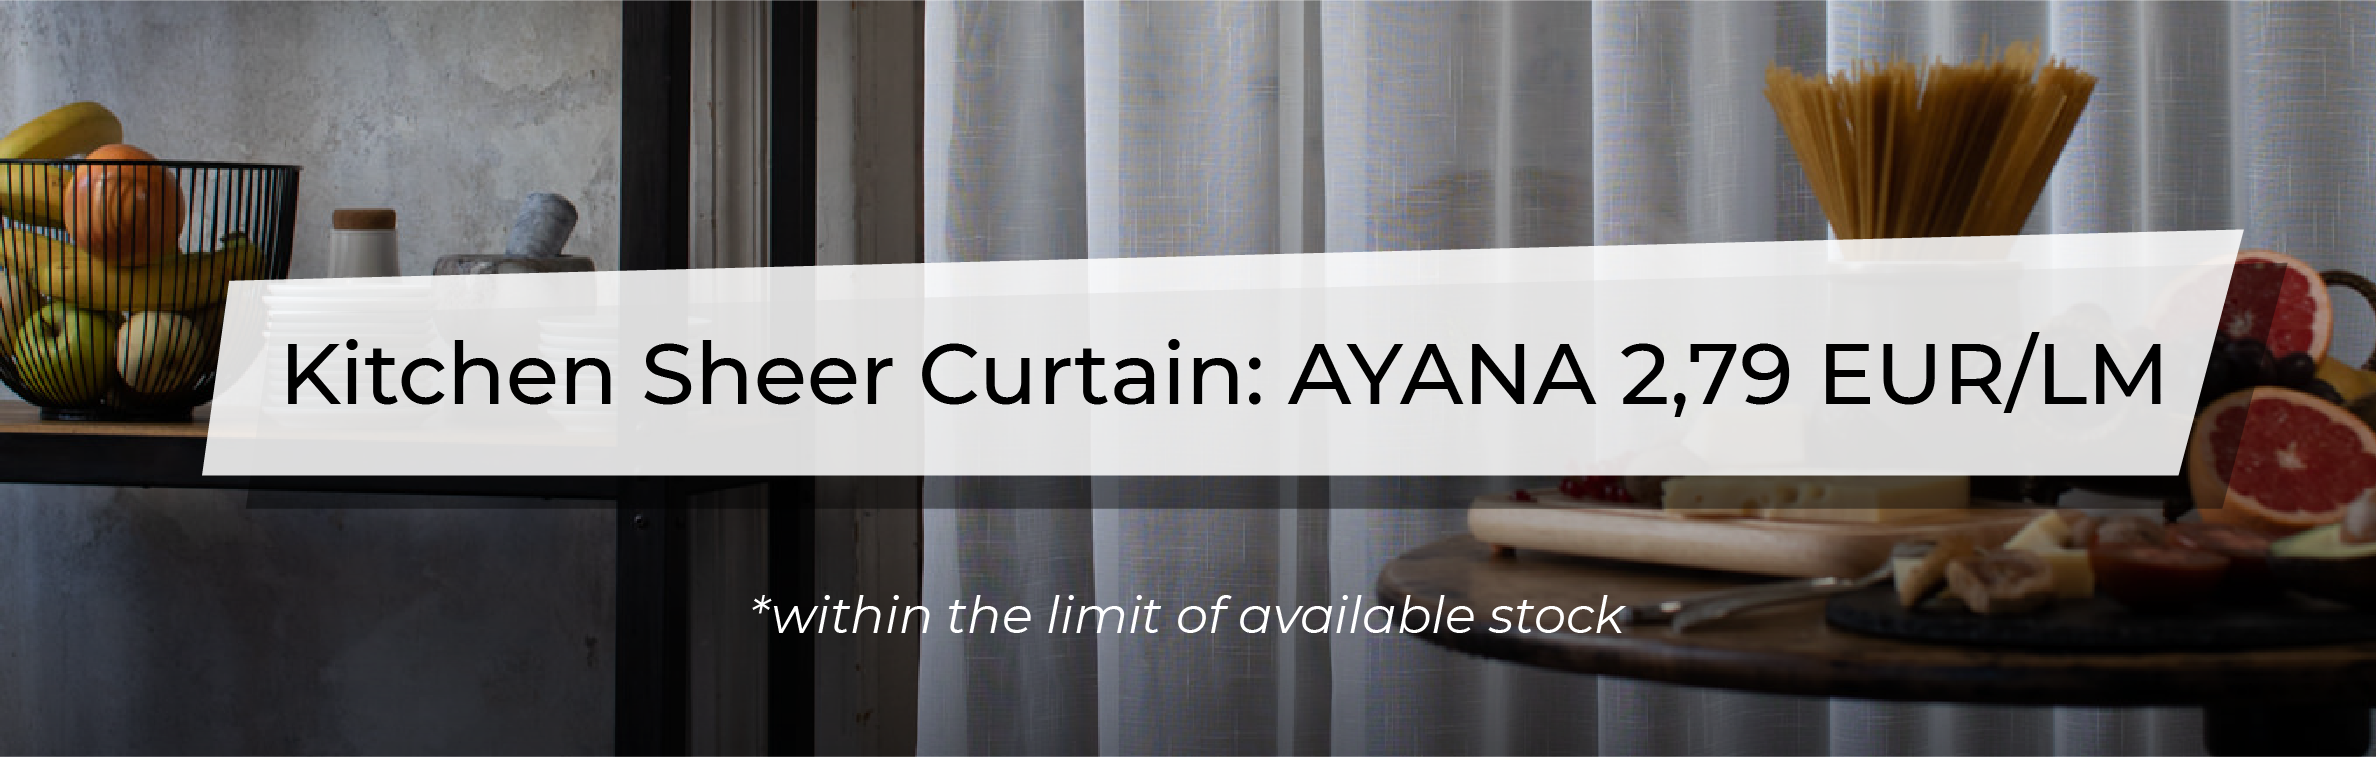 December Promotion - Ayana Kitchen Sheer Curtain